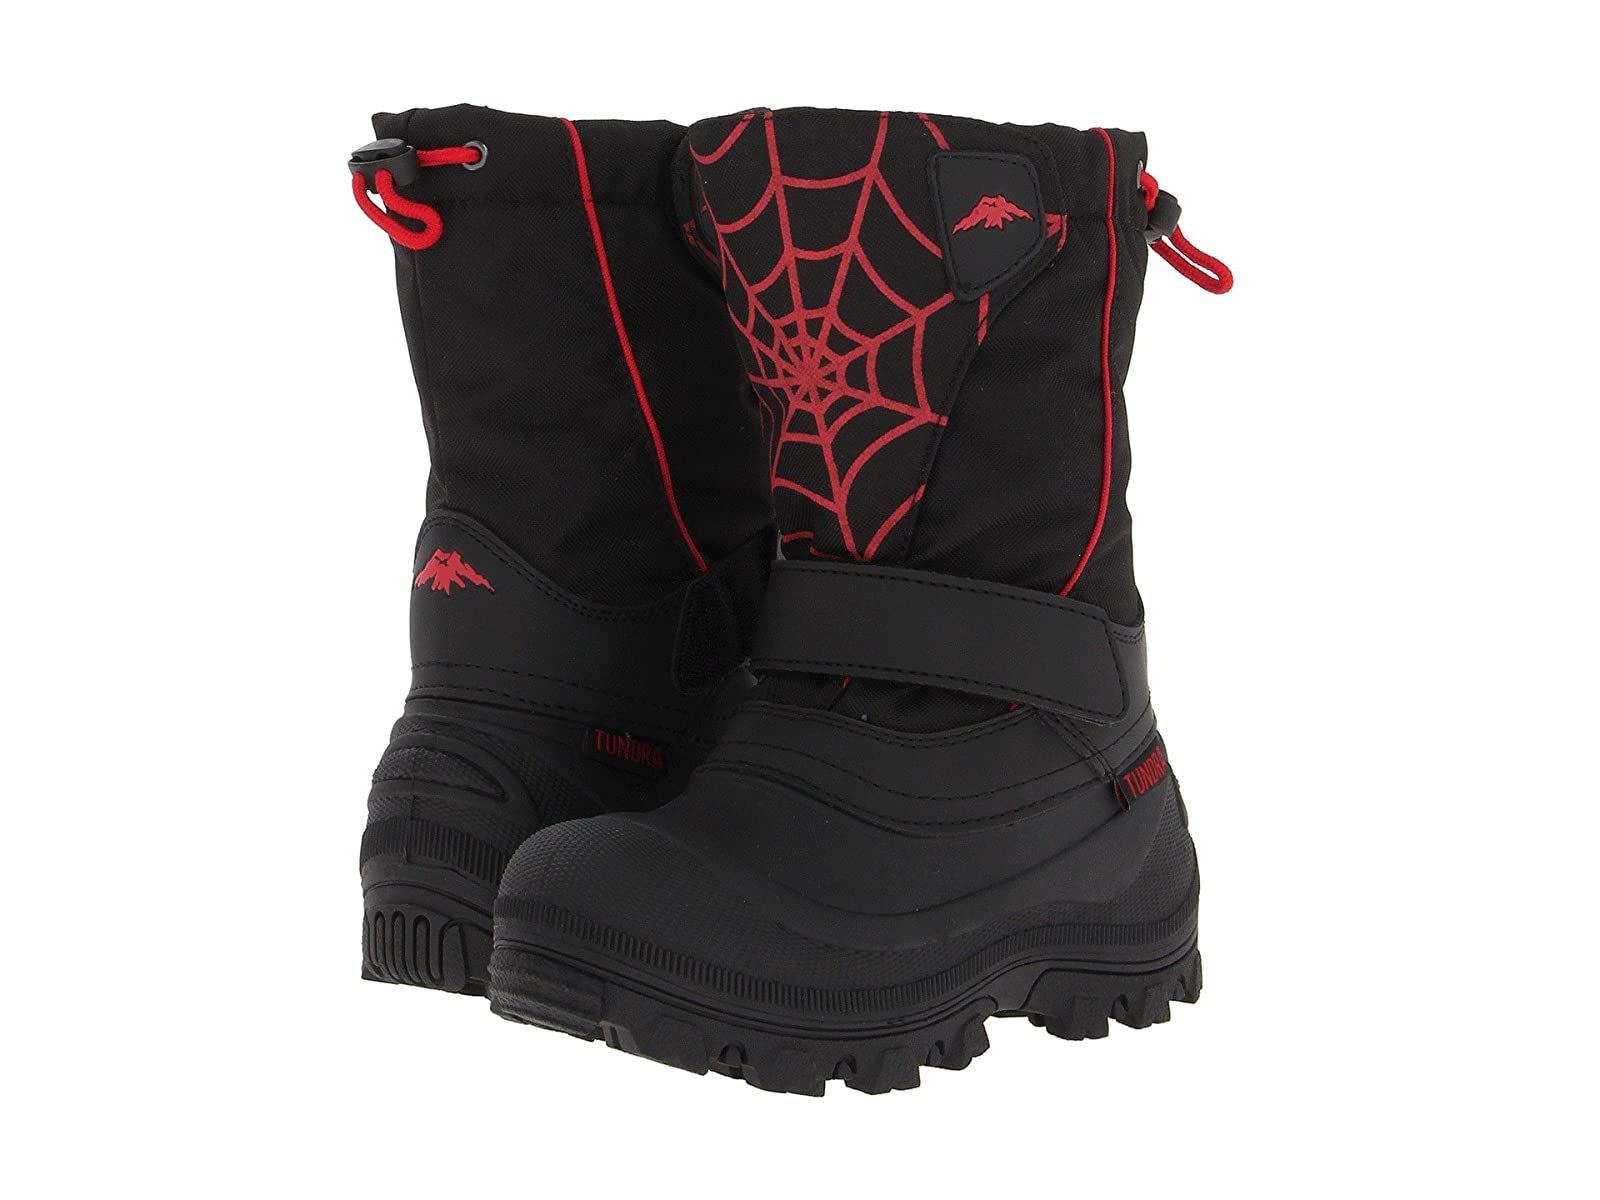 Tundra Boots Kids Quebec Wide (Toddler/Little Kid/Big Kid)Economical and quality shoes